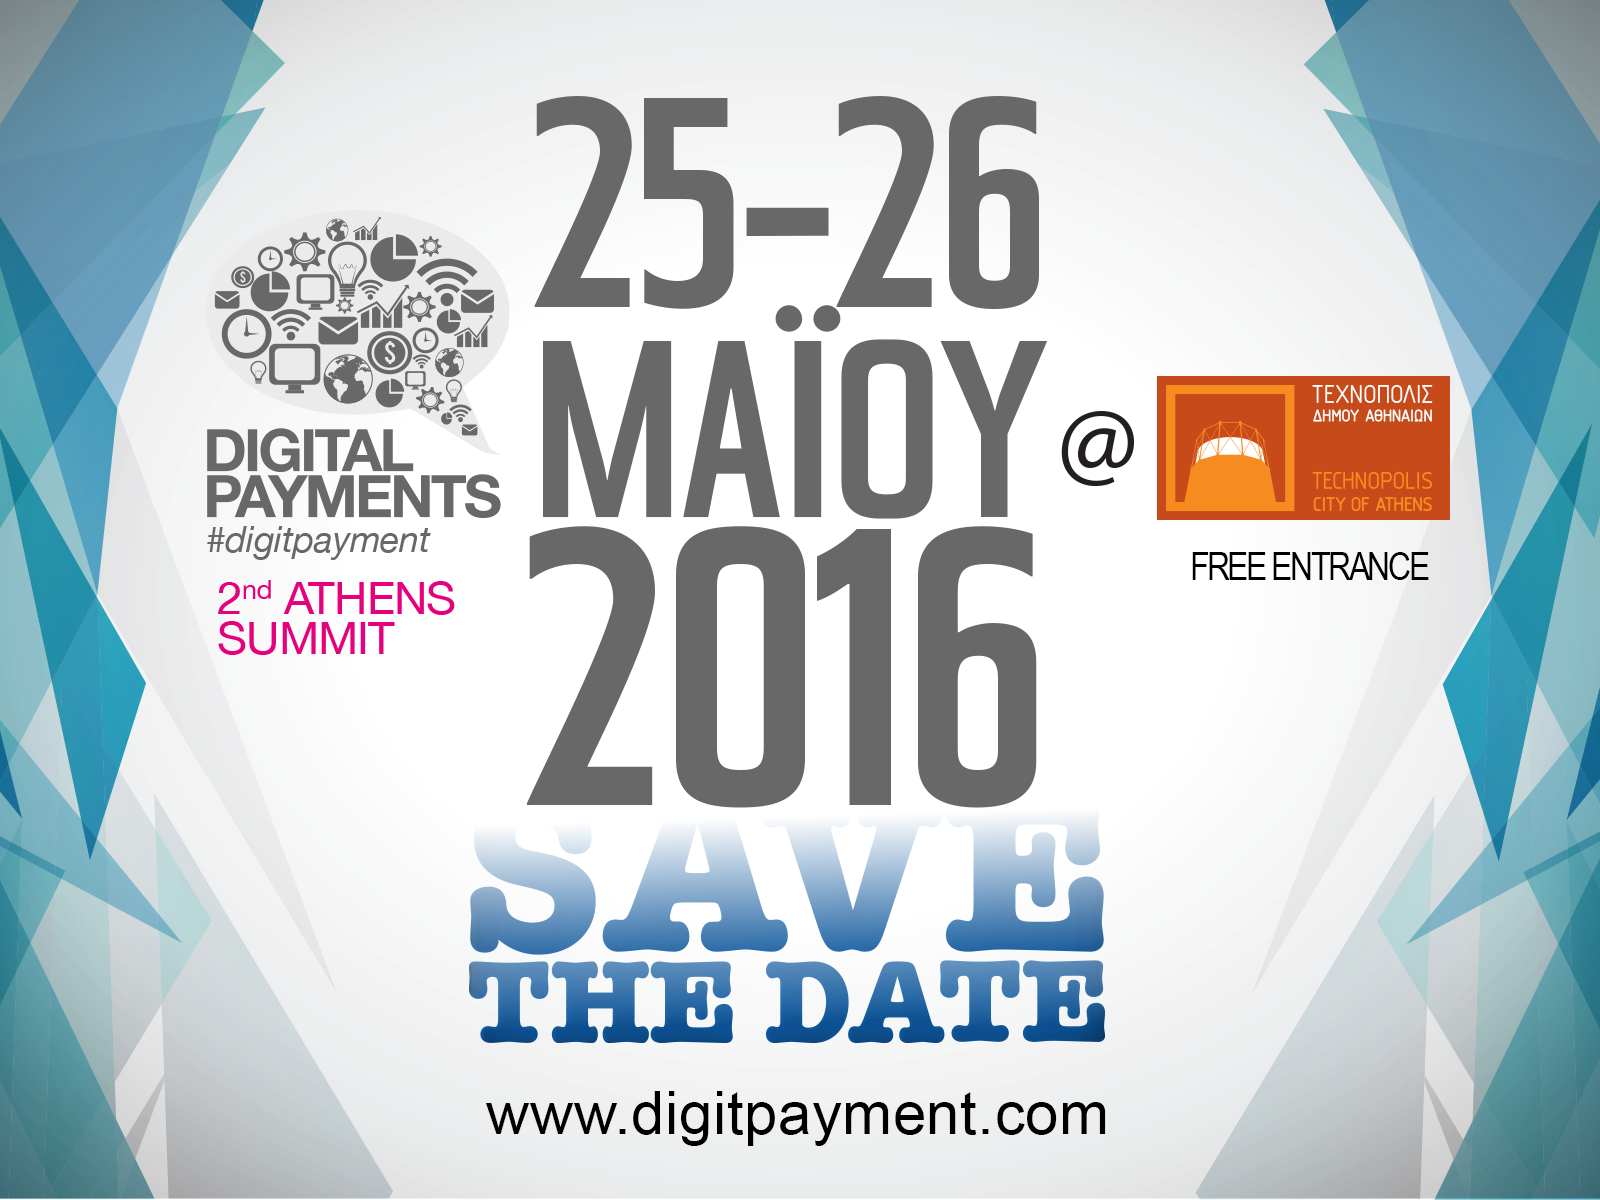 2nd ATHENS SUMMIT- DIGITAL PAYMENTS 2 (1)